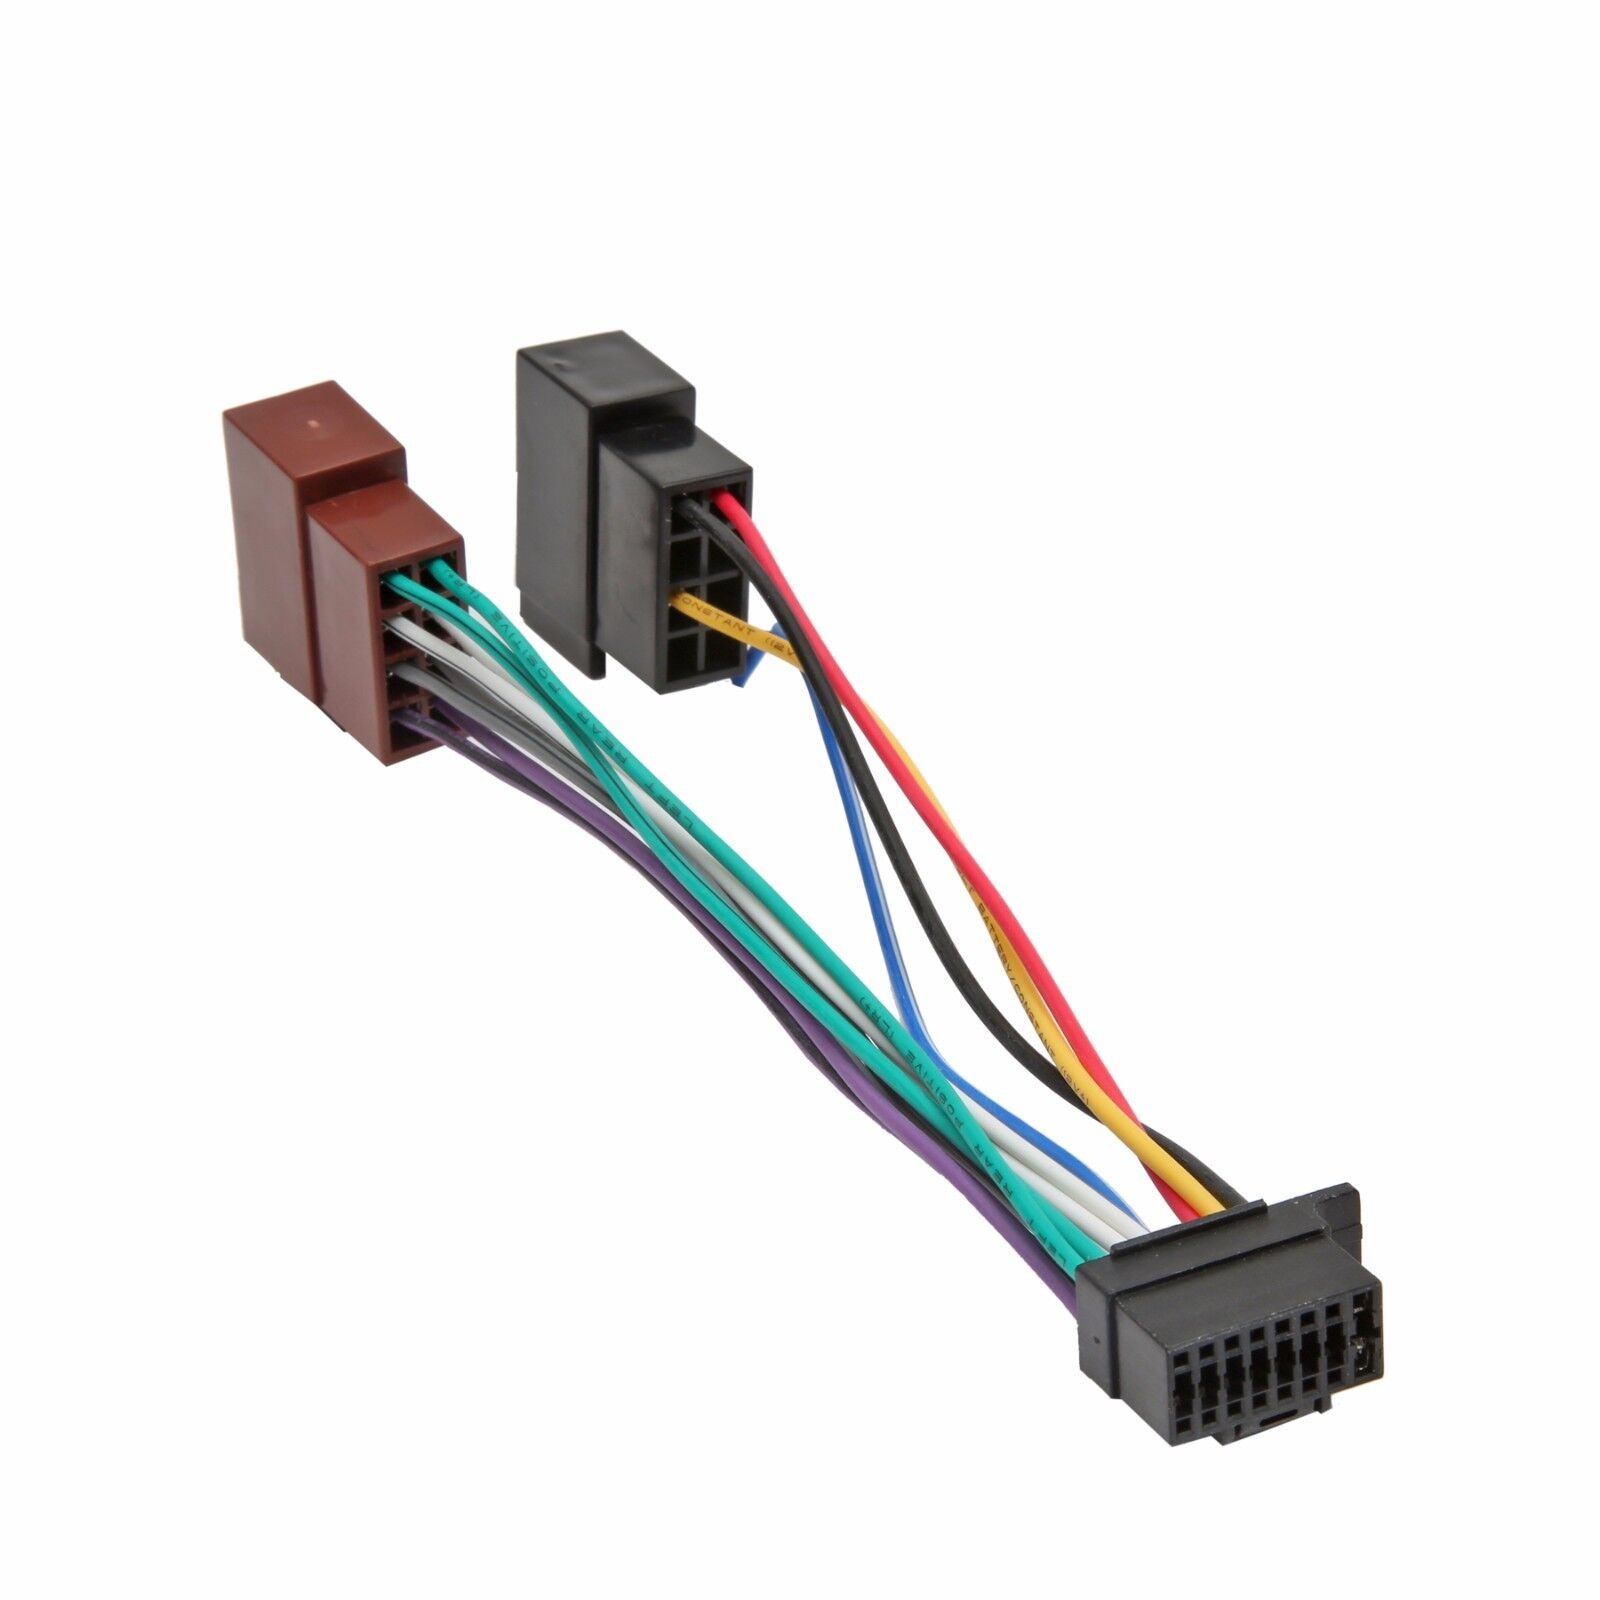 sony 16 pin car stereo radio iso wiring harness connector adaptordetails about sony 16 pin car stereo radio iso wiring harness connector adaptor cable so 101